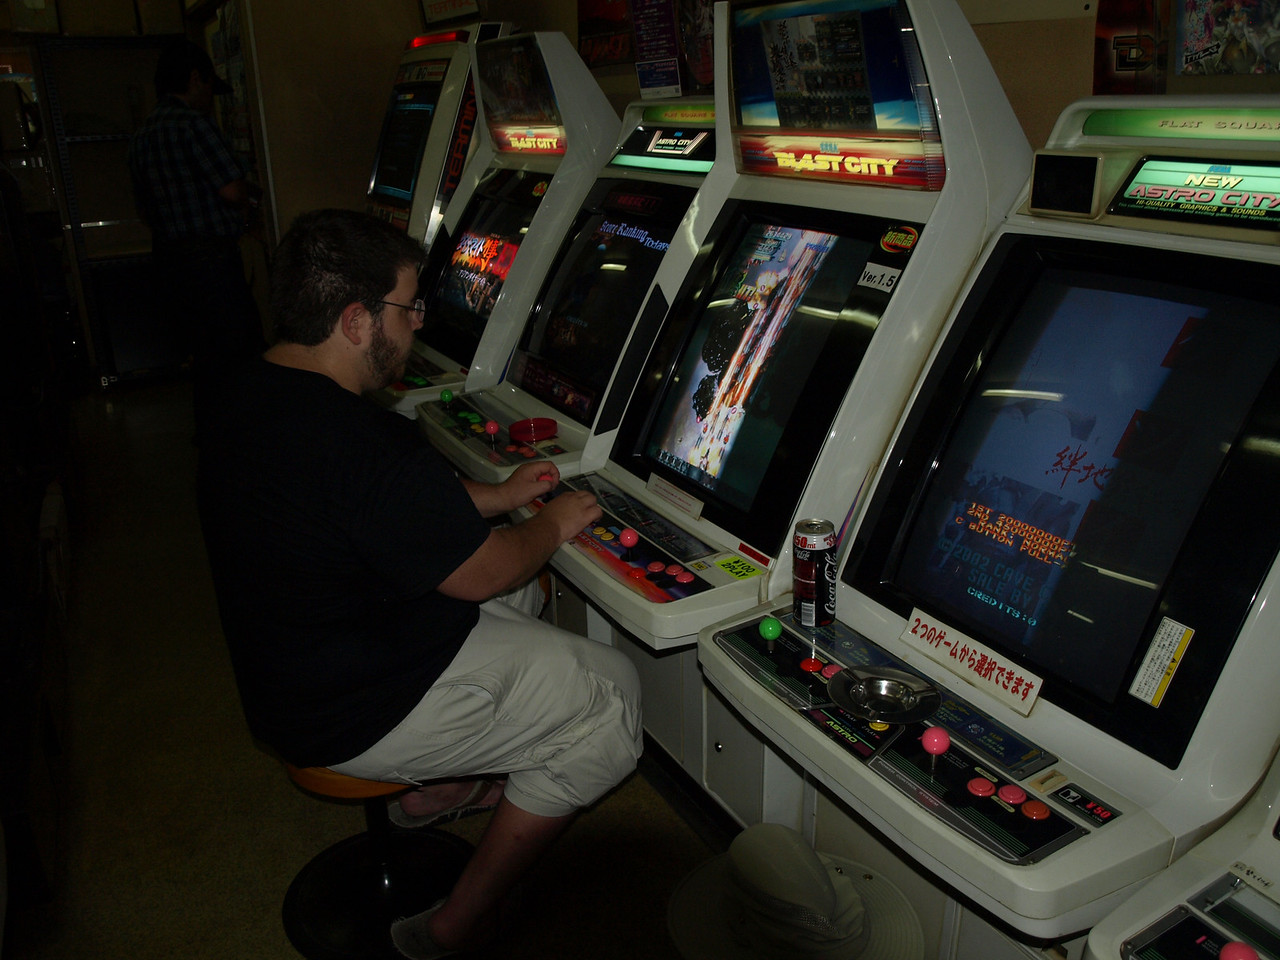 As we continued our little circle around the streets surrounding the hotel, we stopped at a video game room to see what games Japan had to offer. They were surprisingly easy to understand and Josh quickly mastered one of the offerings.